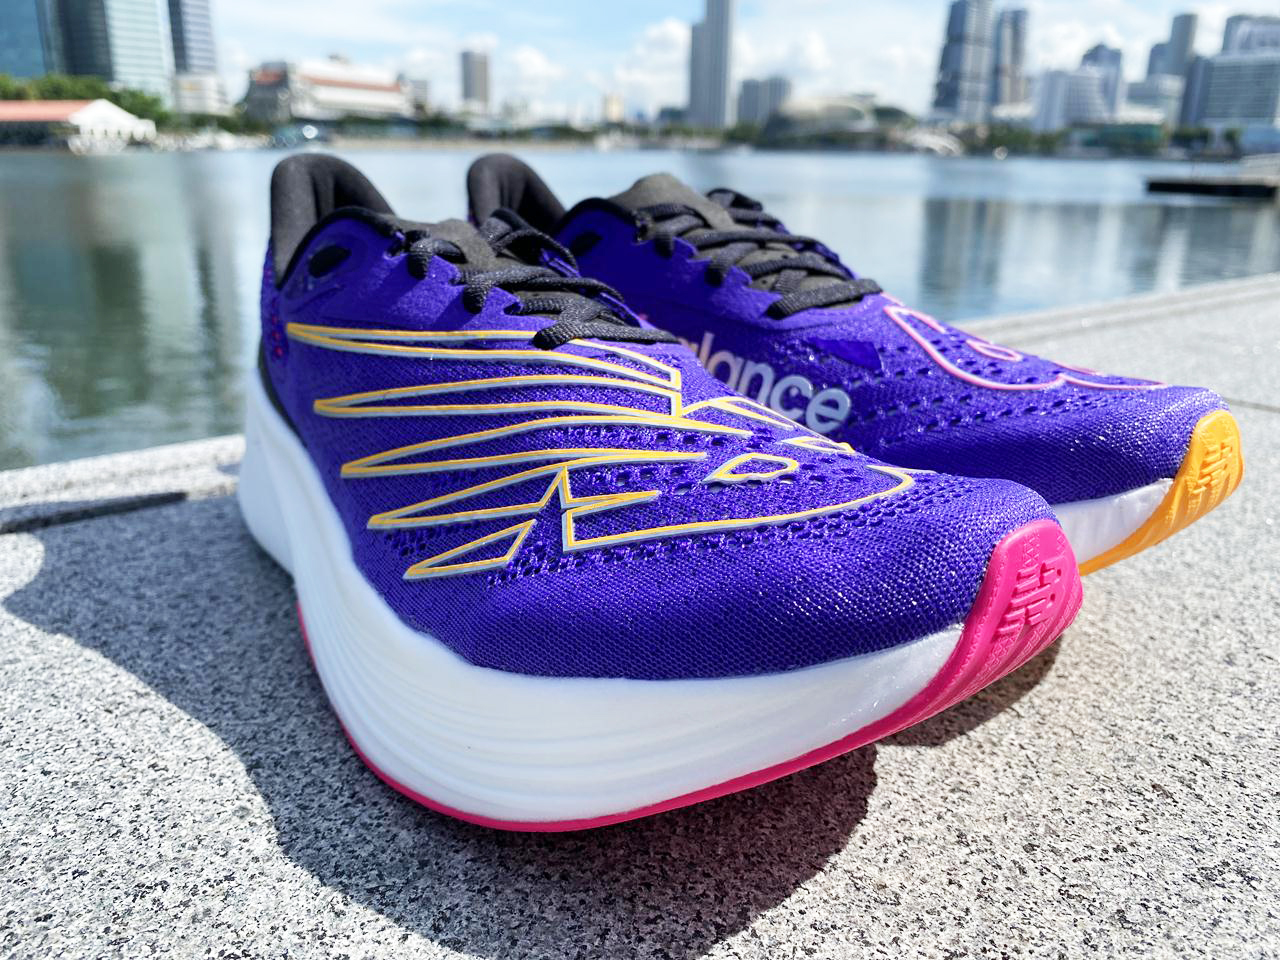 New Balance FuelCell RC Elite v2 Review | Running Shoes Guru